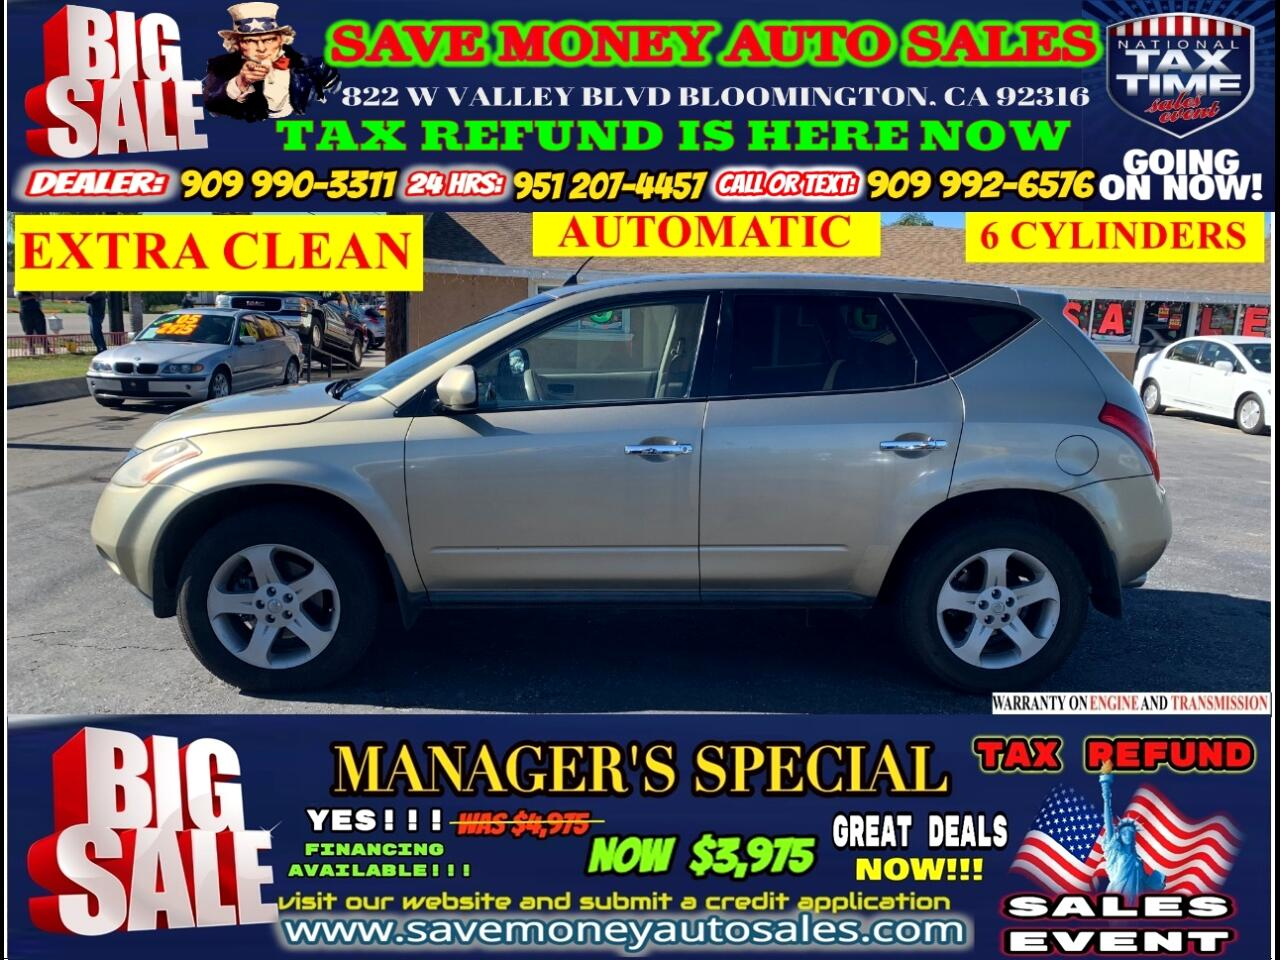 2005 Nissan Murano 2005 NISSAN MURANO>>EXTRA CLEAN>>6 CYLINDER>>>AUTO